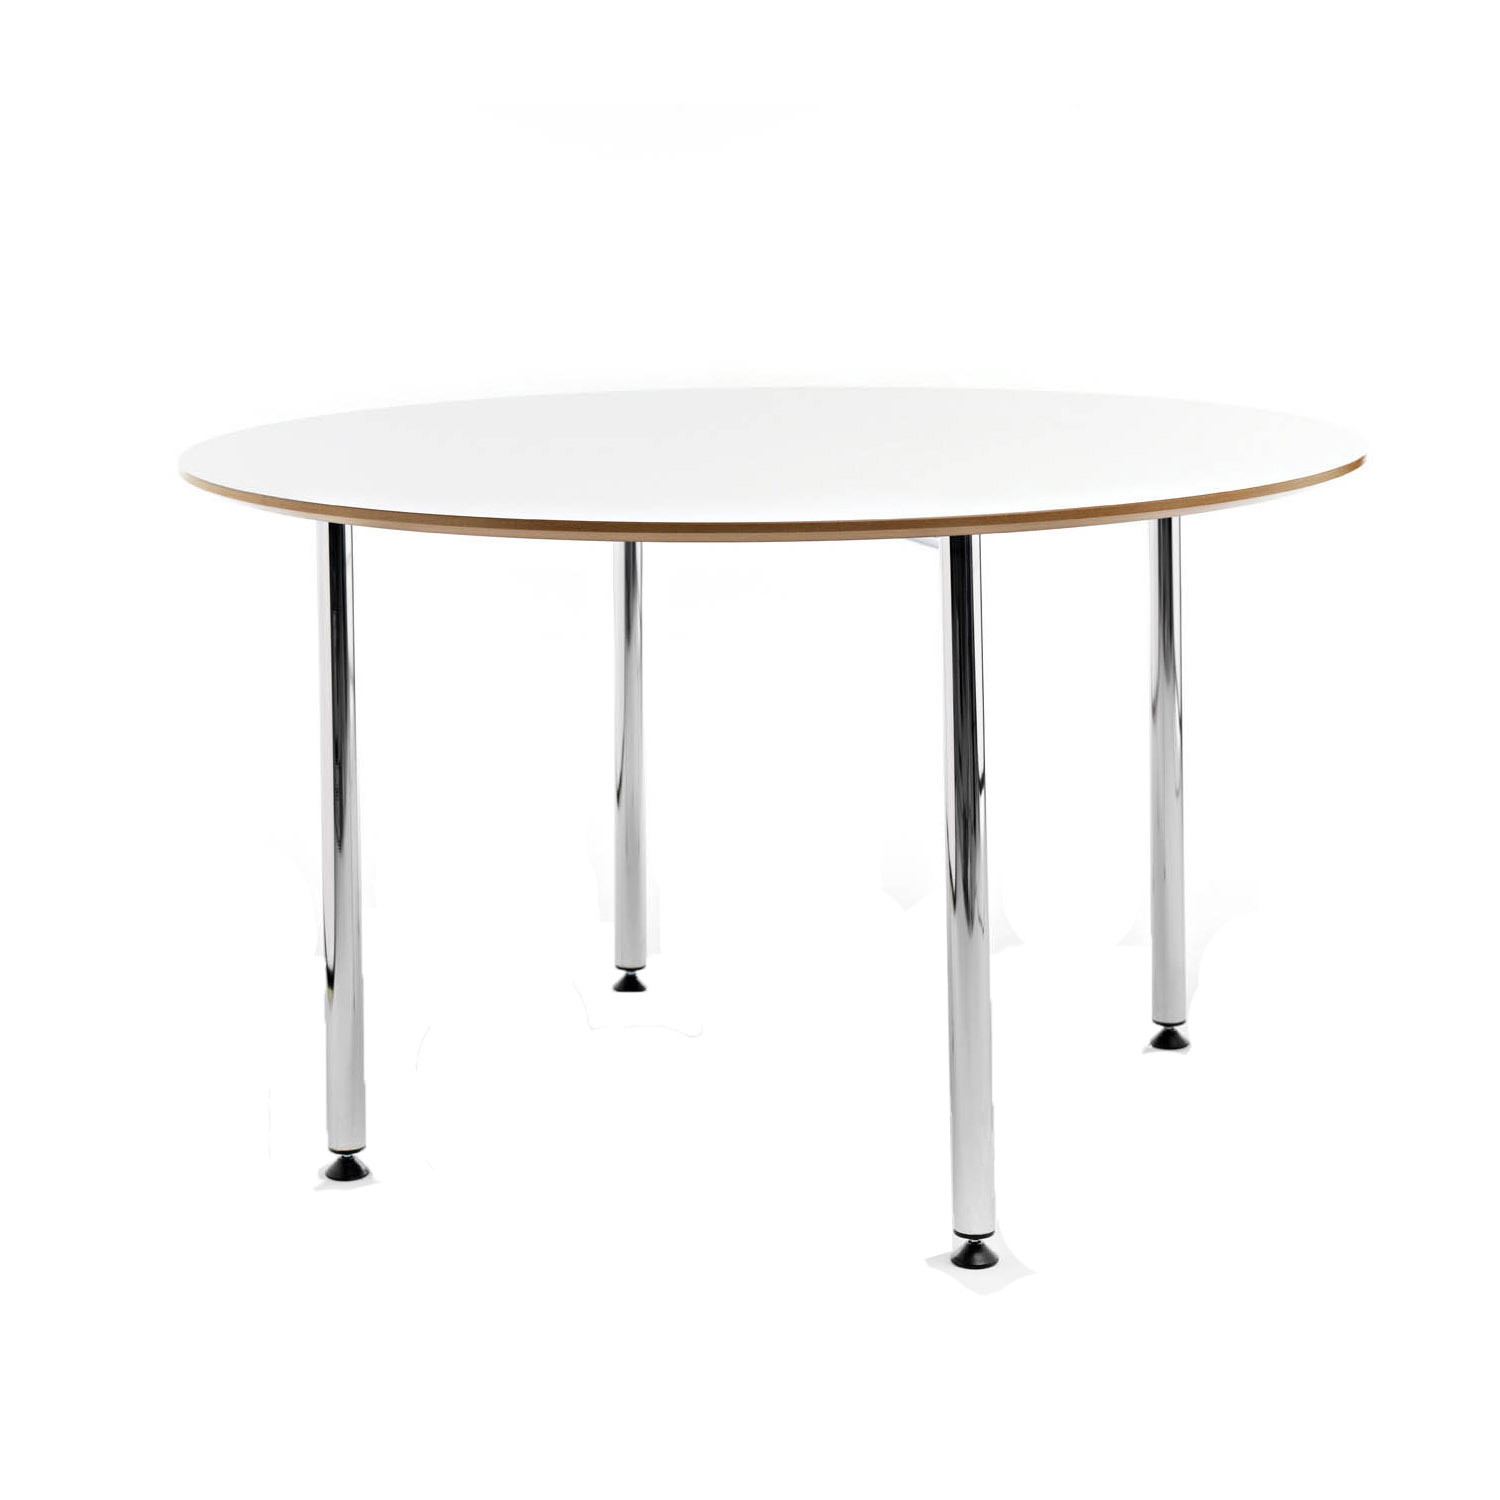 Must Round Table from Randers+Radius